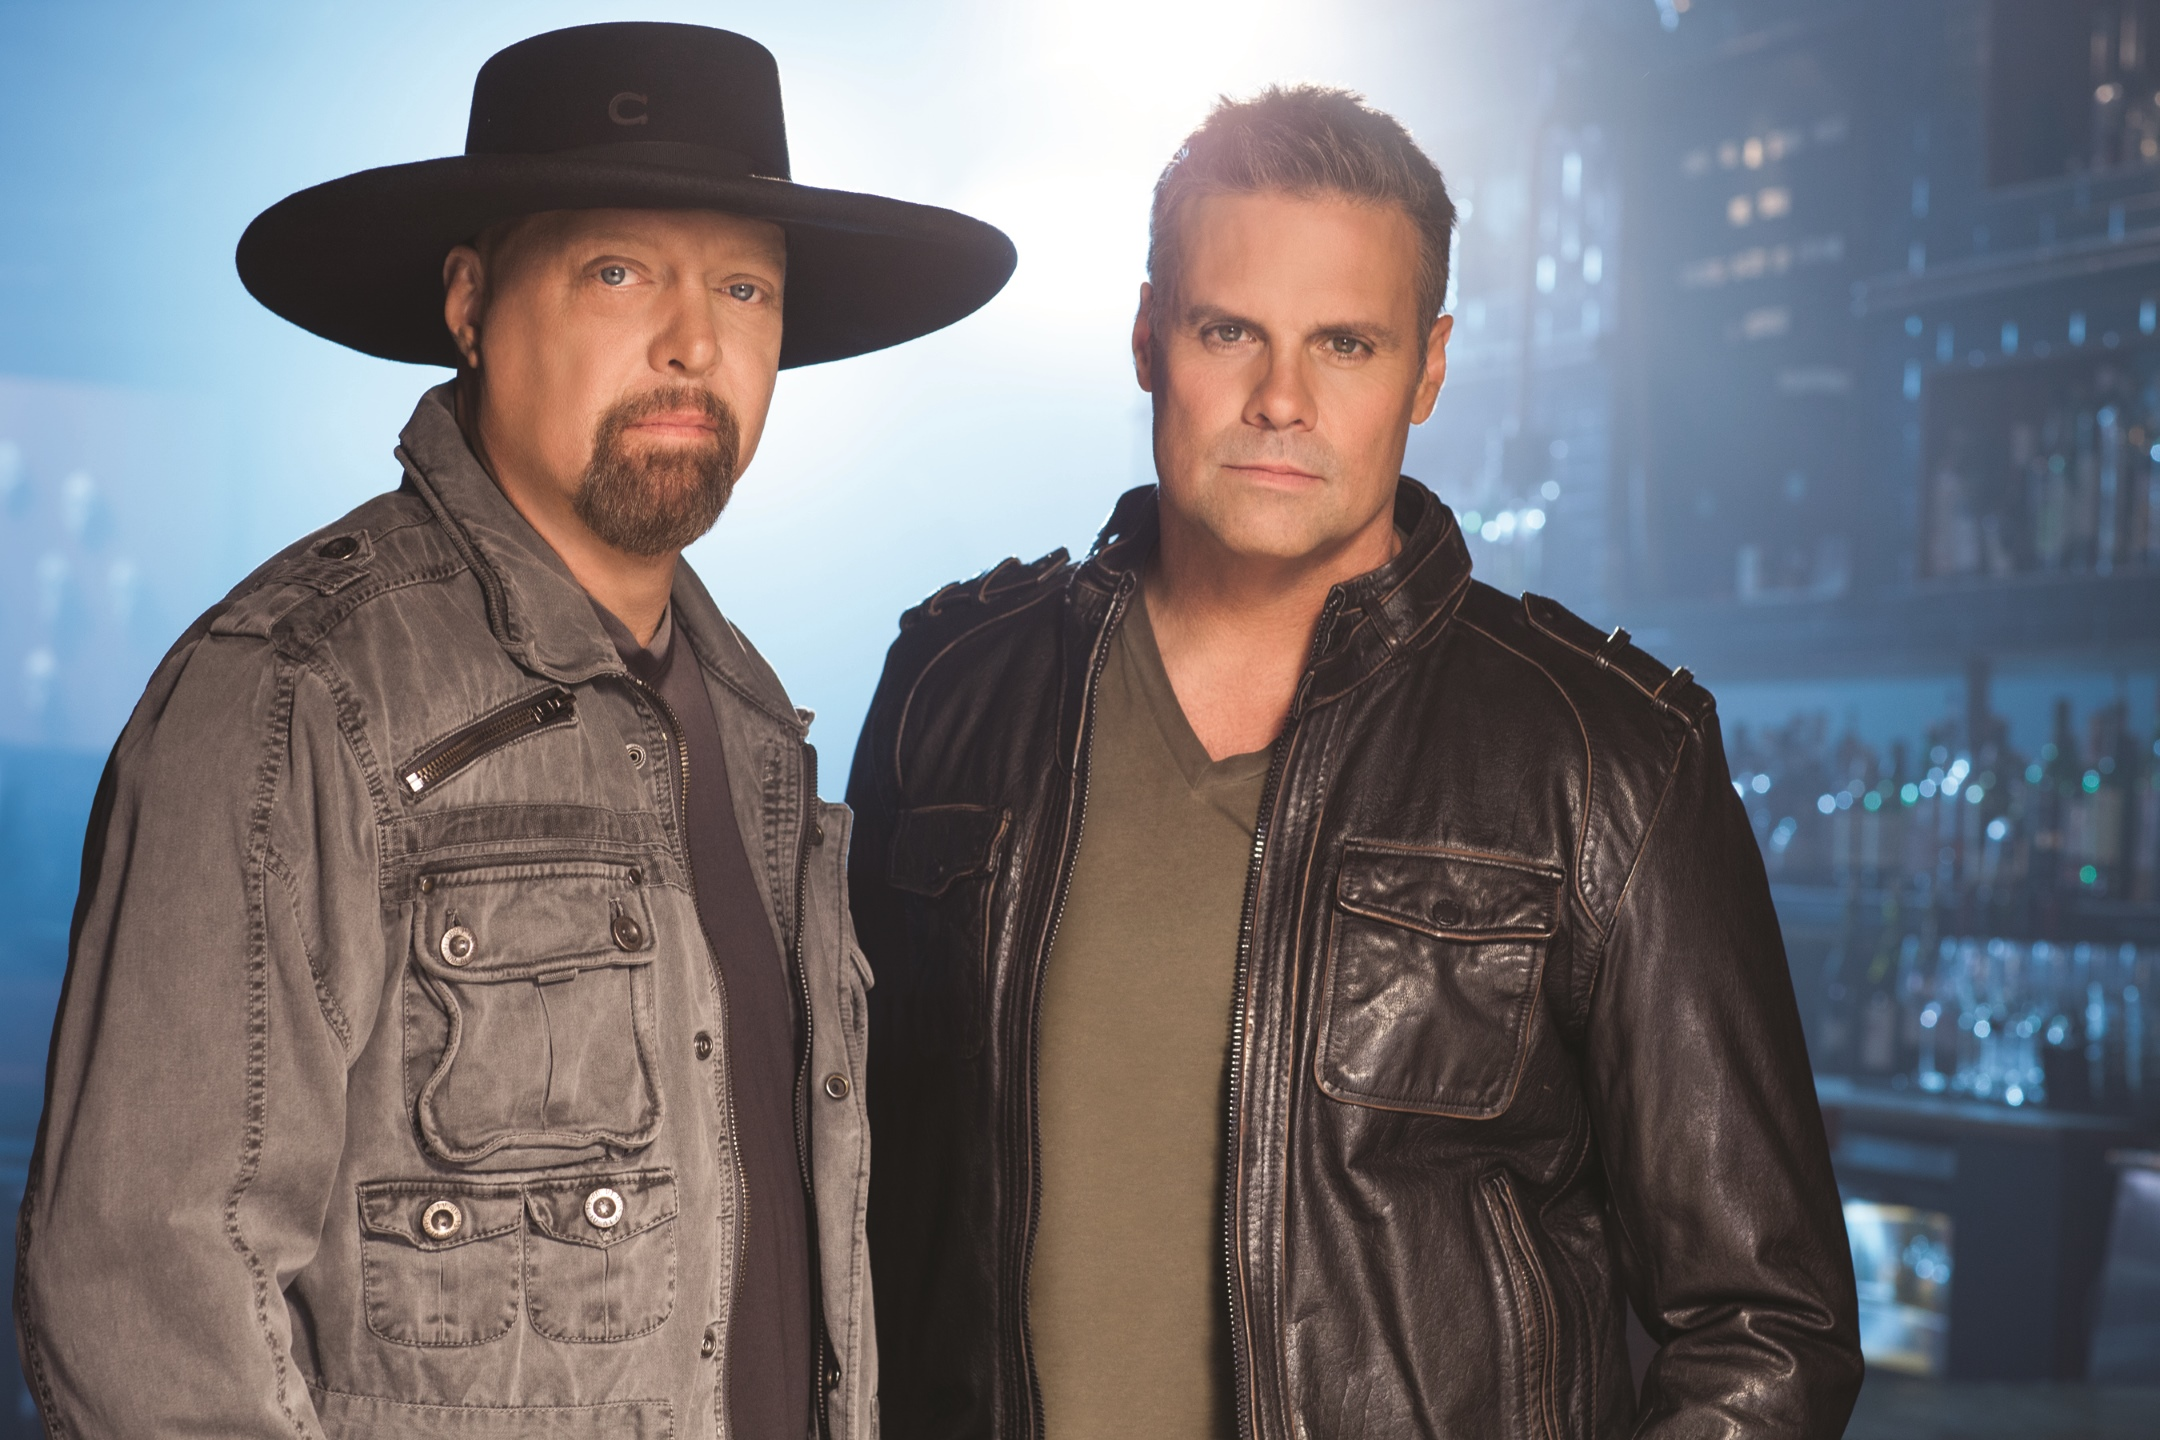 DAYTONA BEACH, Fla. (FNN NEWS) -- Award-winning country duo Montgomery Gentry performing at Coke Zero 400. Photo courtesy of Montgomery Gentry.